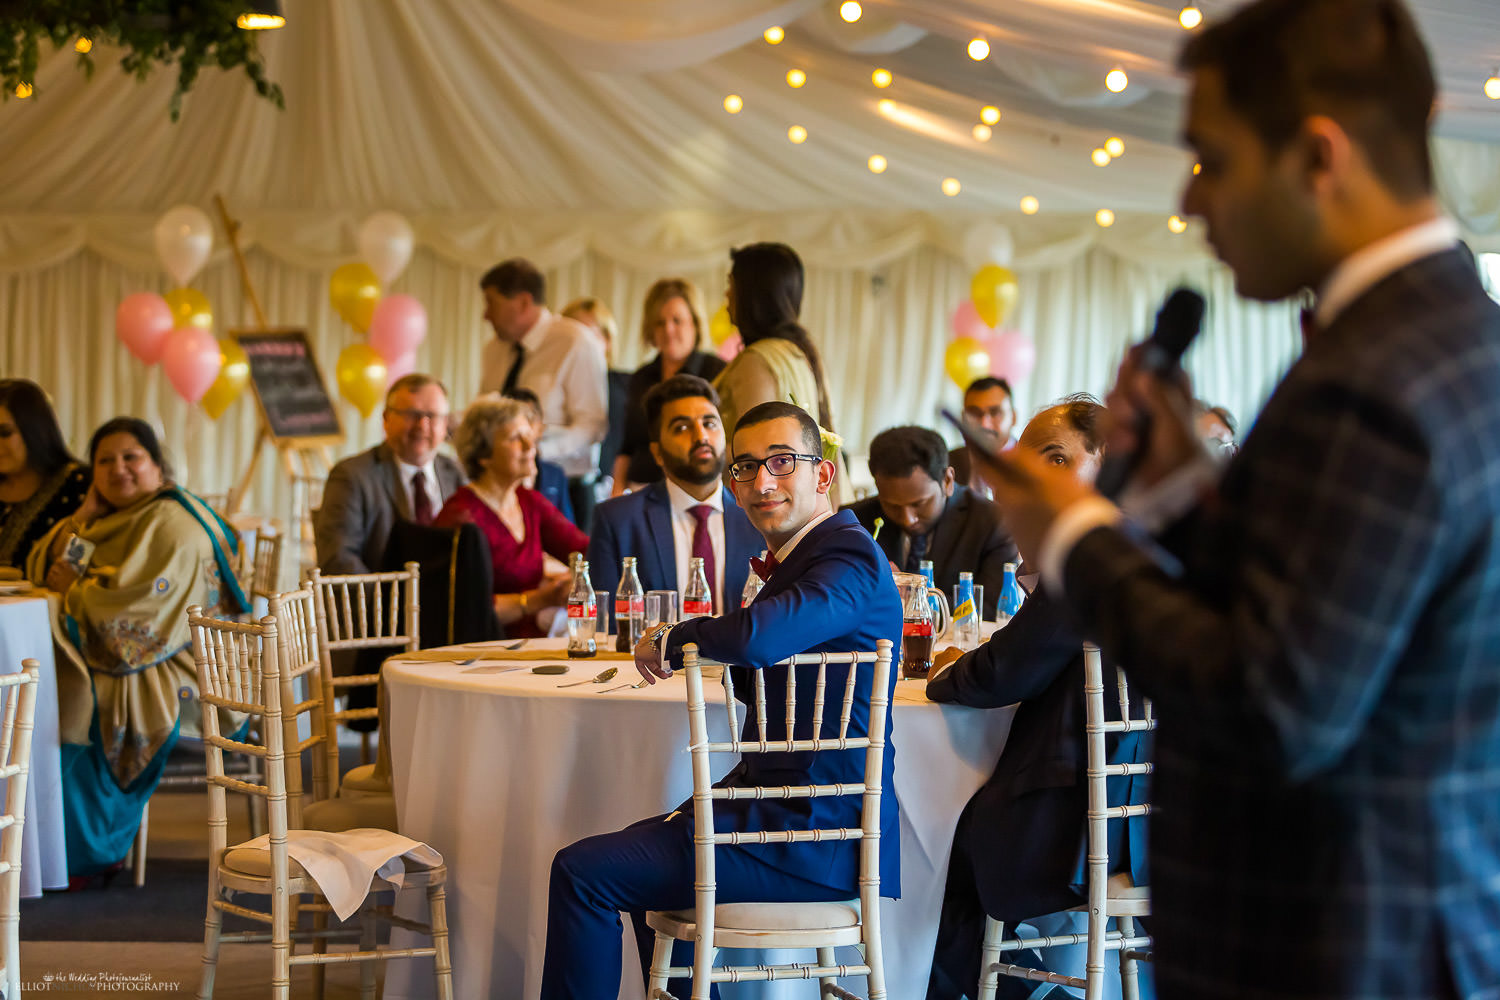 Readings during the engagement party at Vallum Farm. Photo by Newcastle wedding photographer Elliot Nichol.